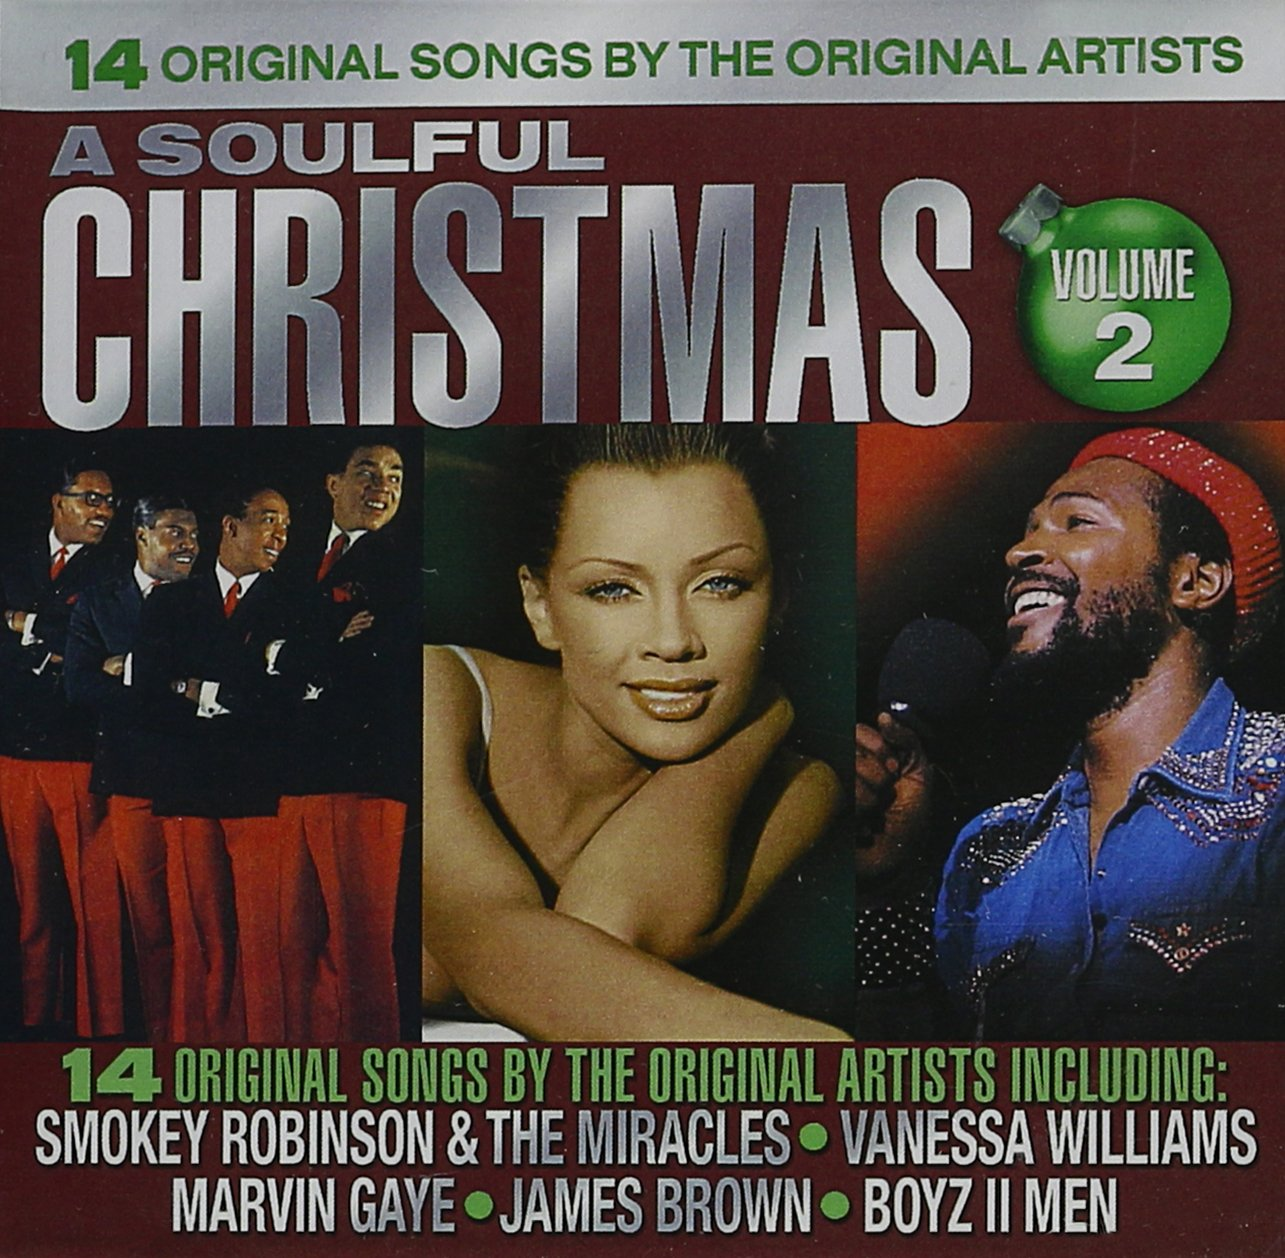 VARIOUS ARTISTS - A Soulful Christmas Volume - 2 - Amazon.com Music